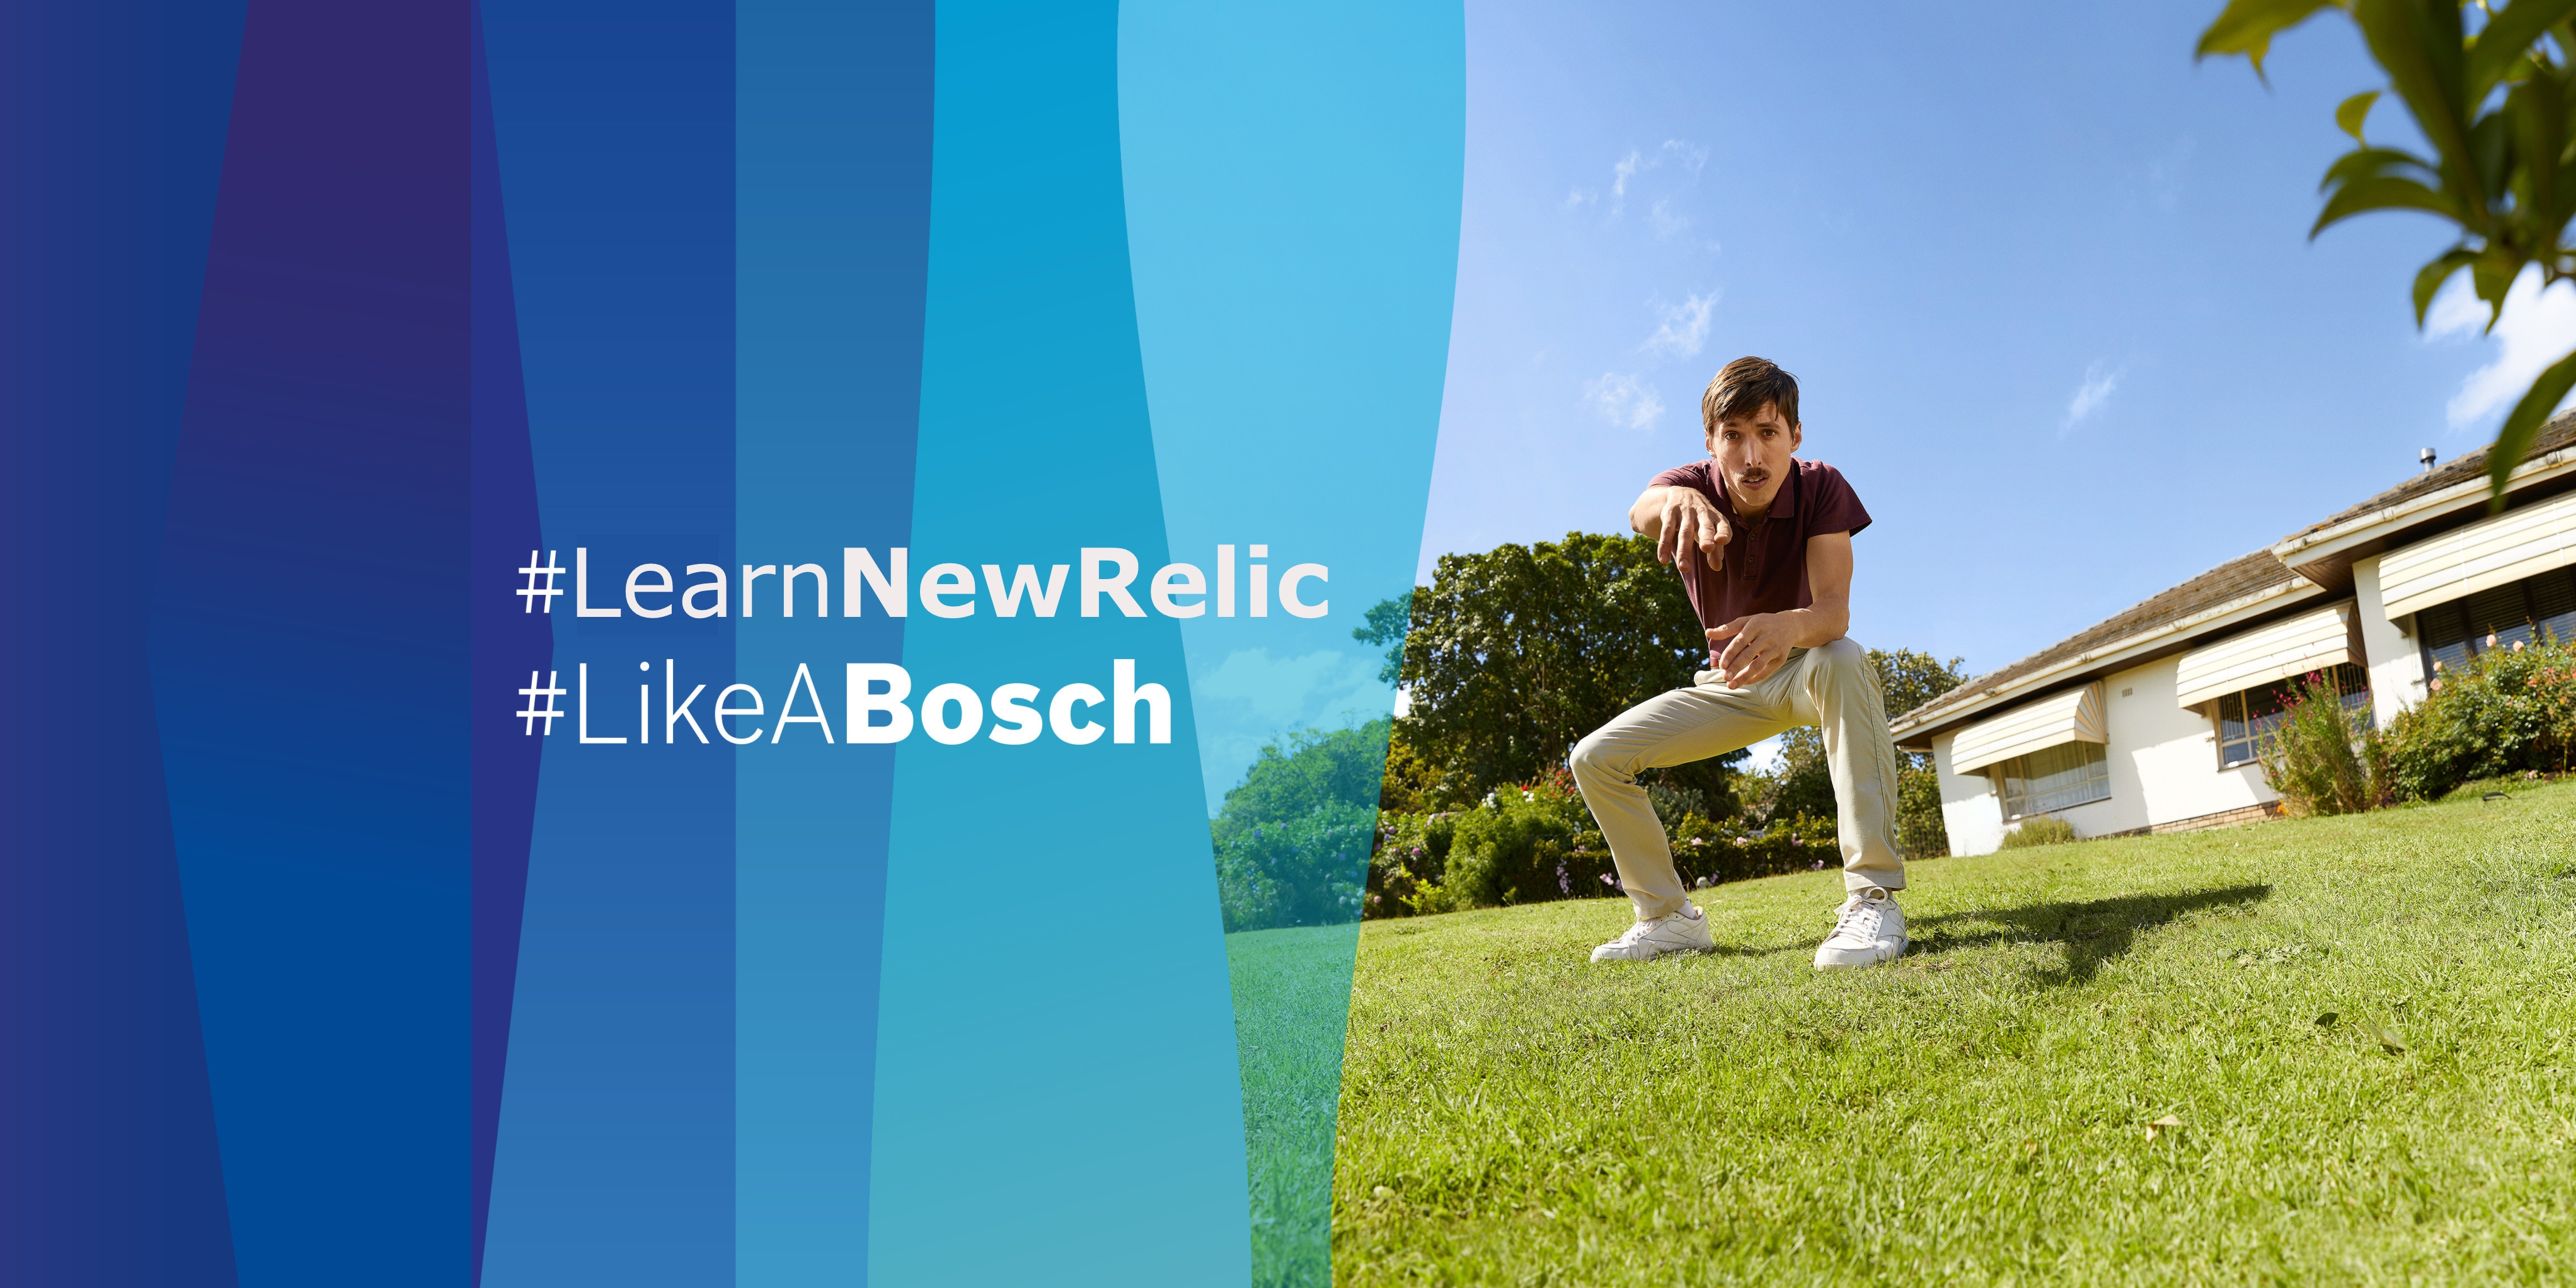 BOSCH - New Relic Learning Path